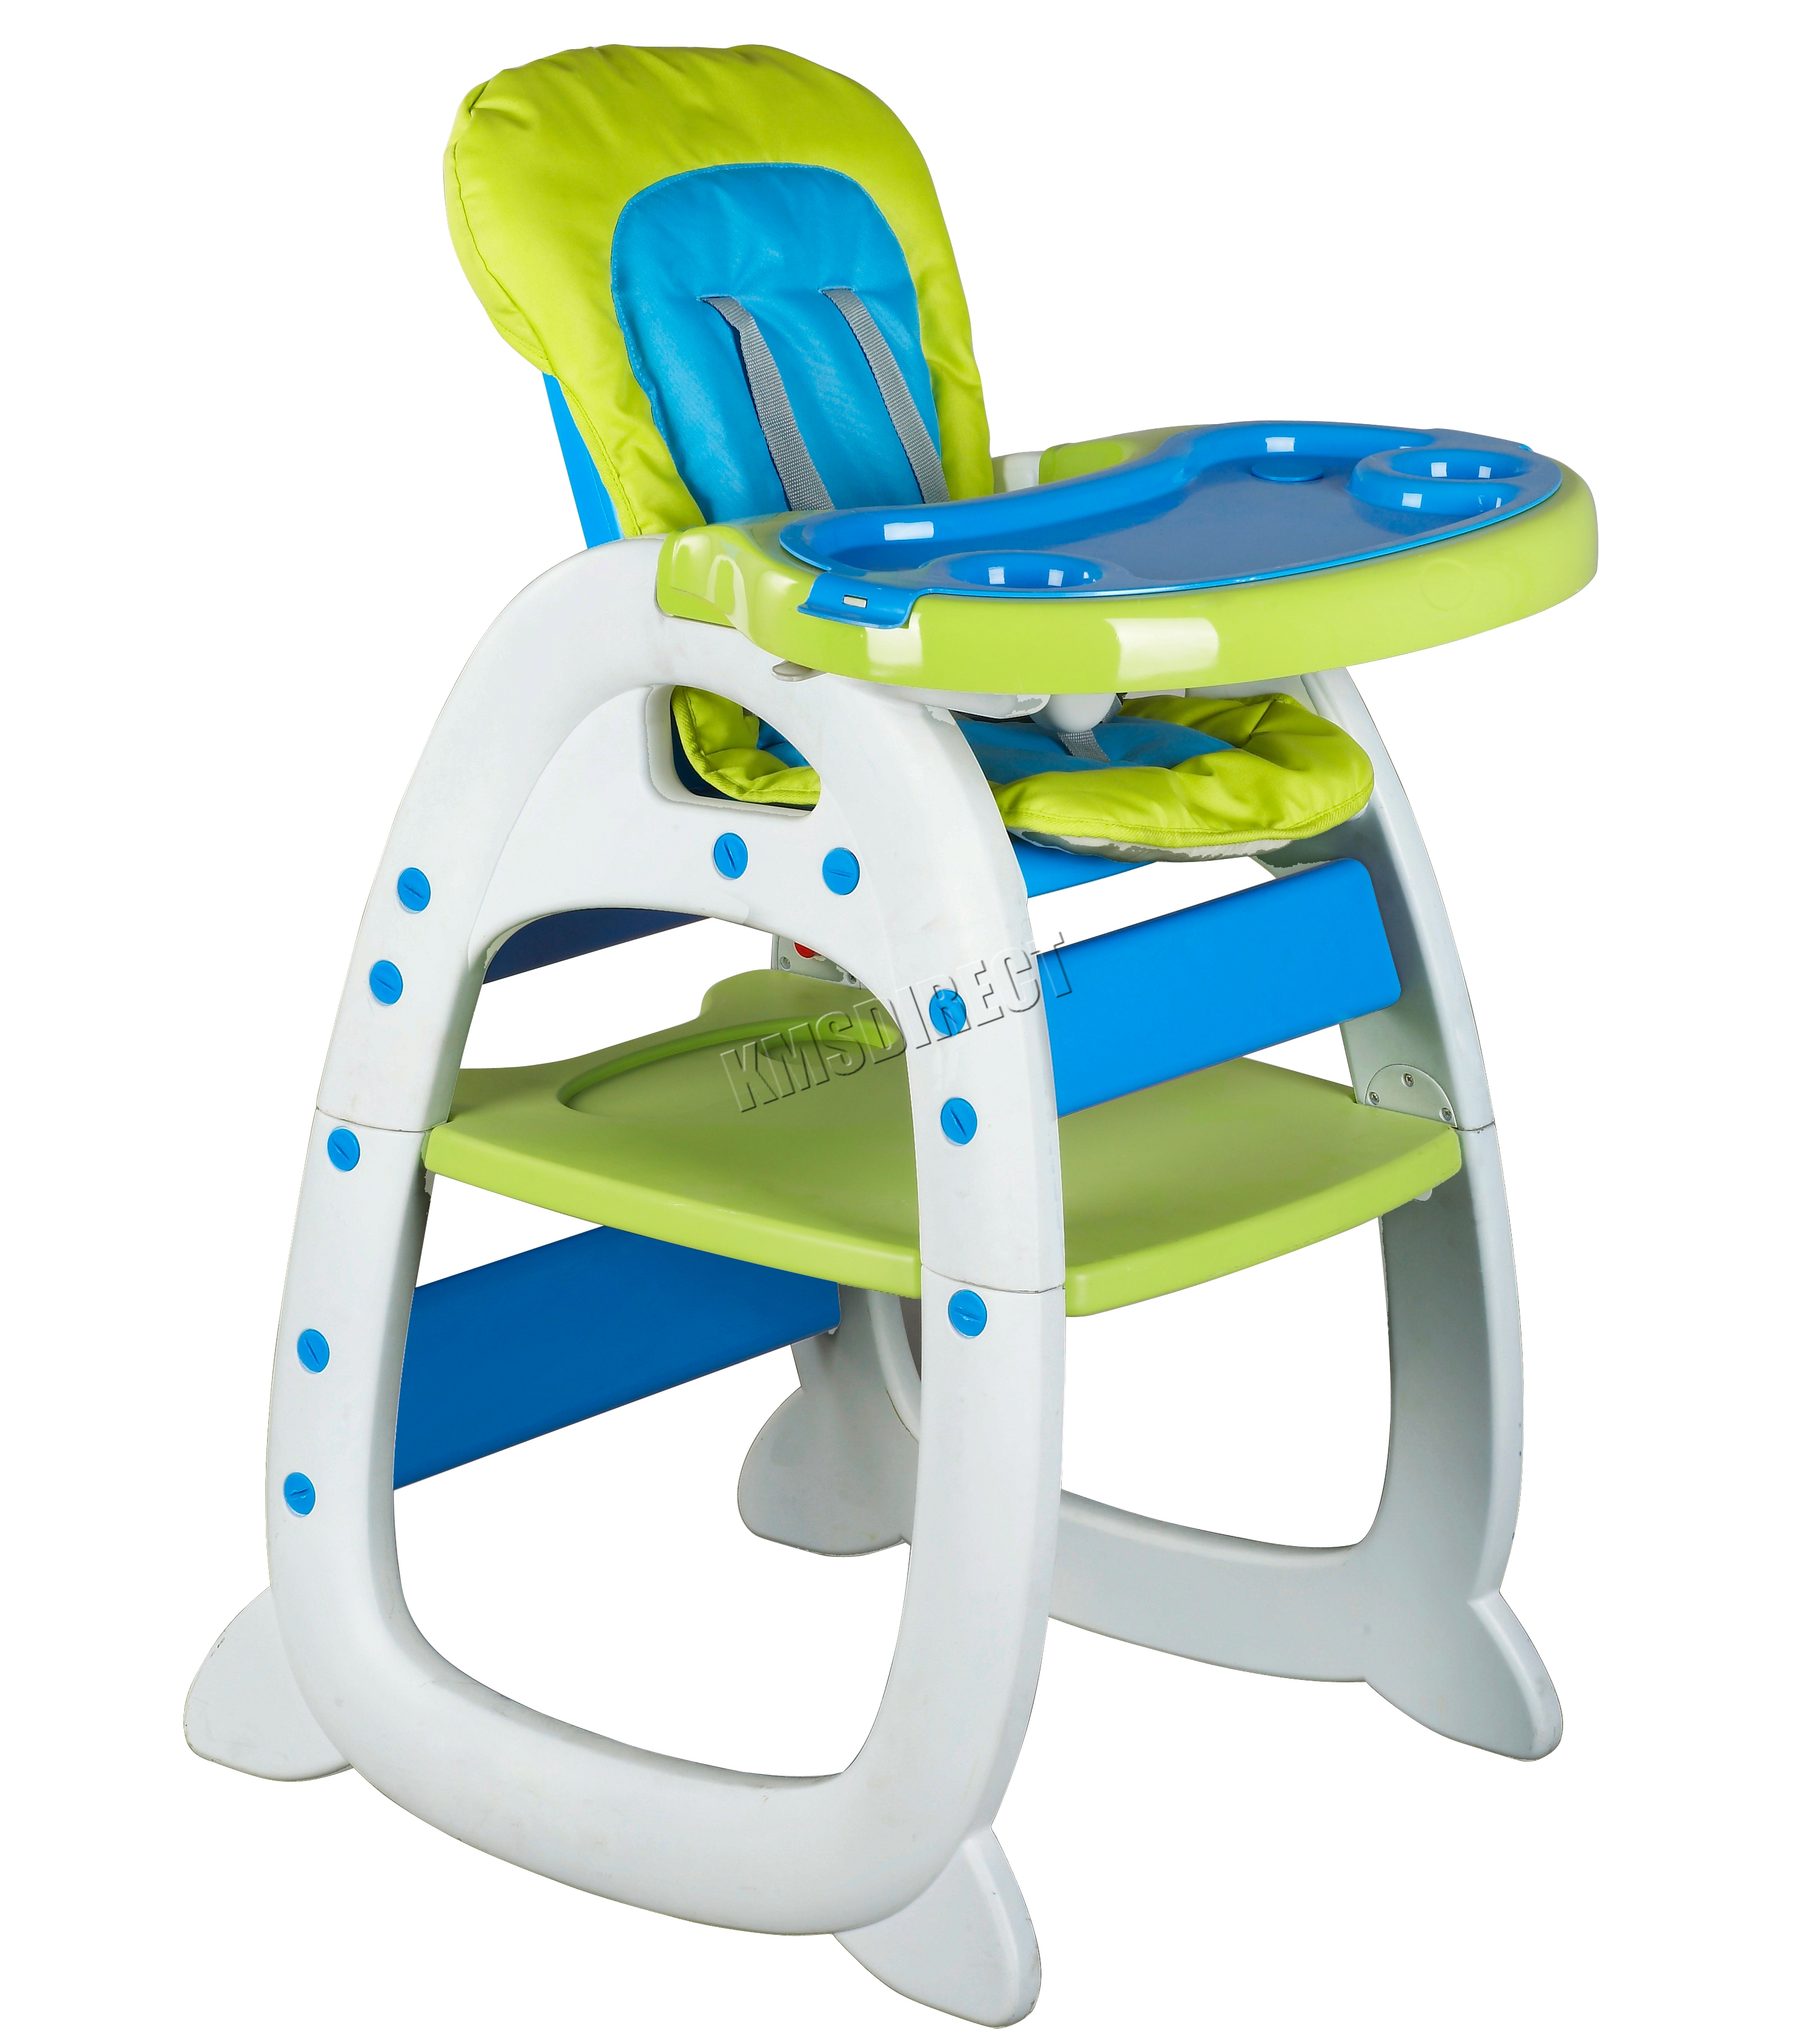 Sentinel FoxHunter Baby Highchair Infant High Feeding Seat 3in1 Toddler Table Chair Green  sc 1 st  eBay & FoxHunter Baby Highchair Infant High Feeding Seat 3in1 Toddler Table ...